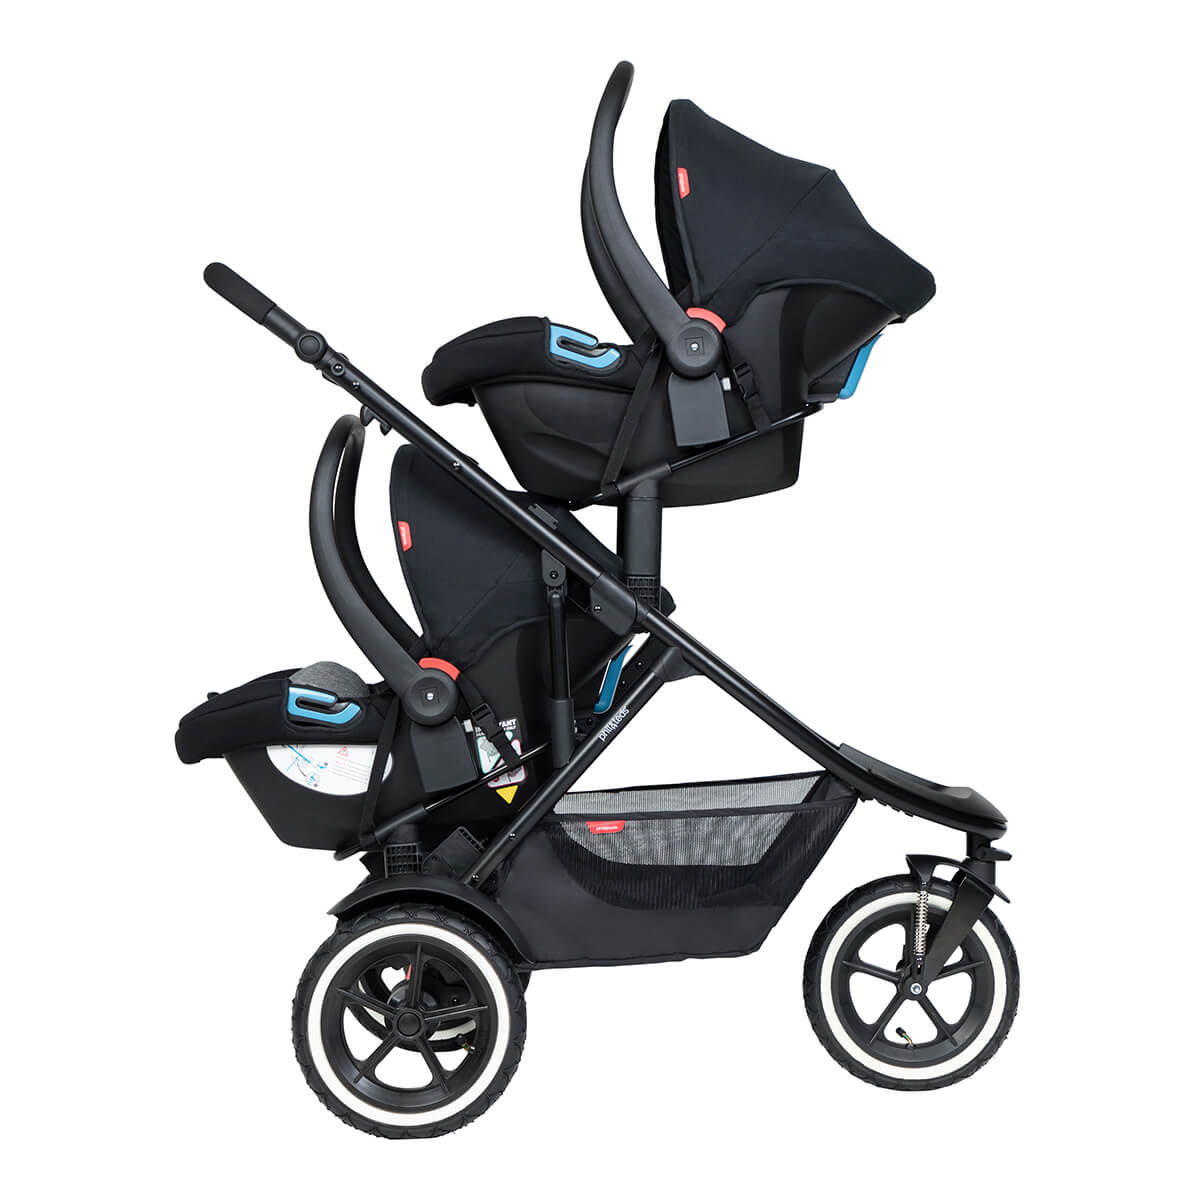 https://cdn.accentuate.io/4513463369824/19440099983544/philteds-sport-buggy-with-double-alpha-travel-system-v1626486645903.jpg?1200x1200